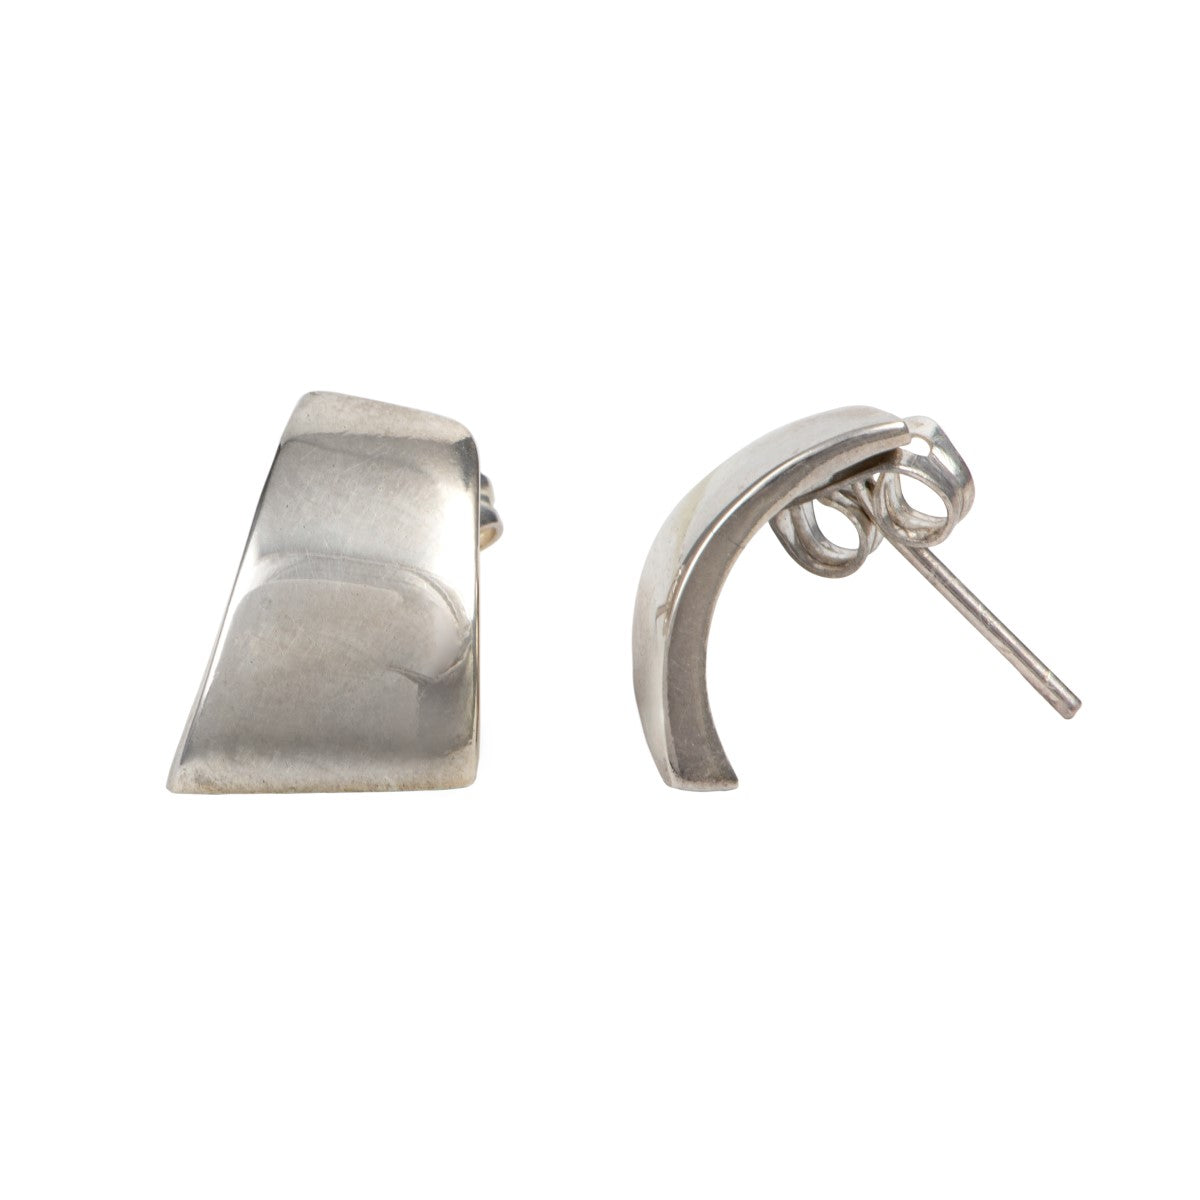 Sterling Silver Stud Earrings with a Curved Quadrilateral Shape